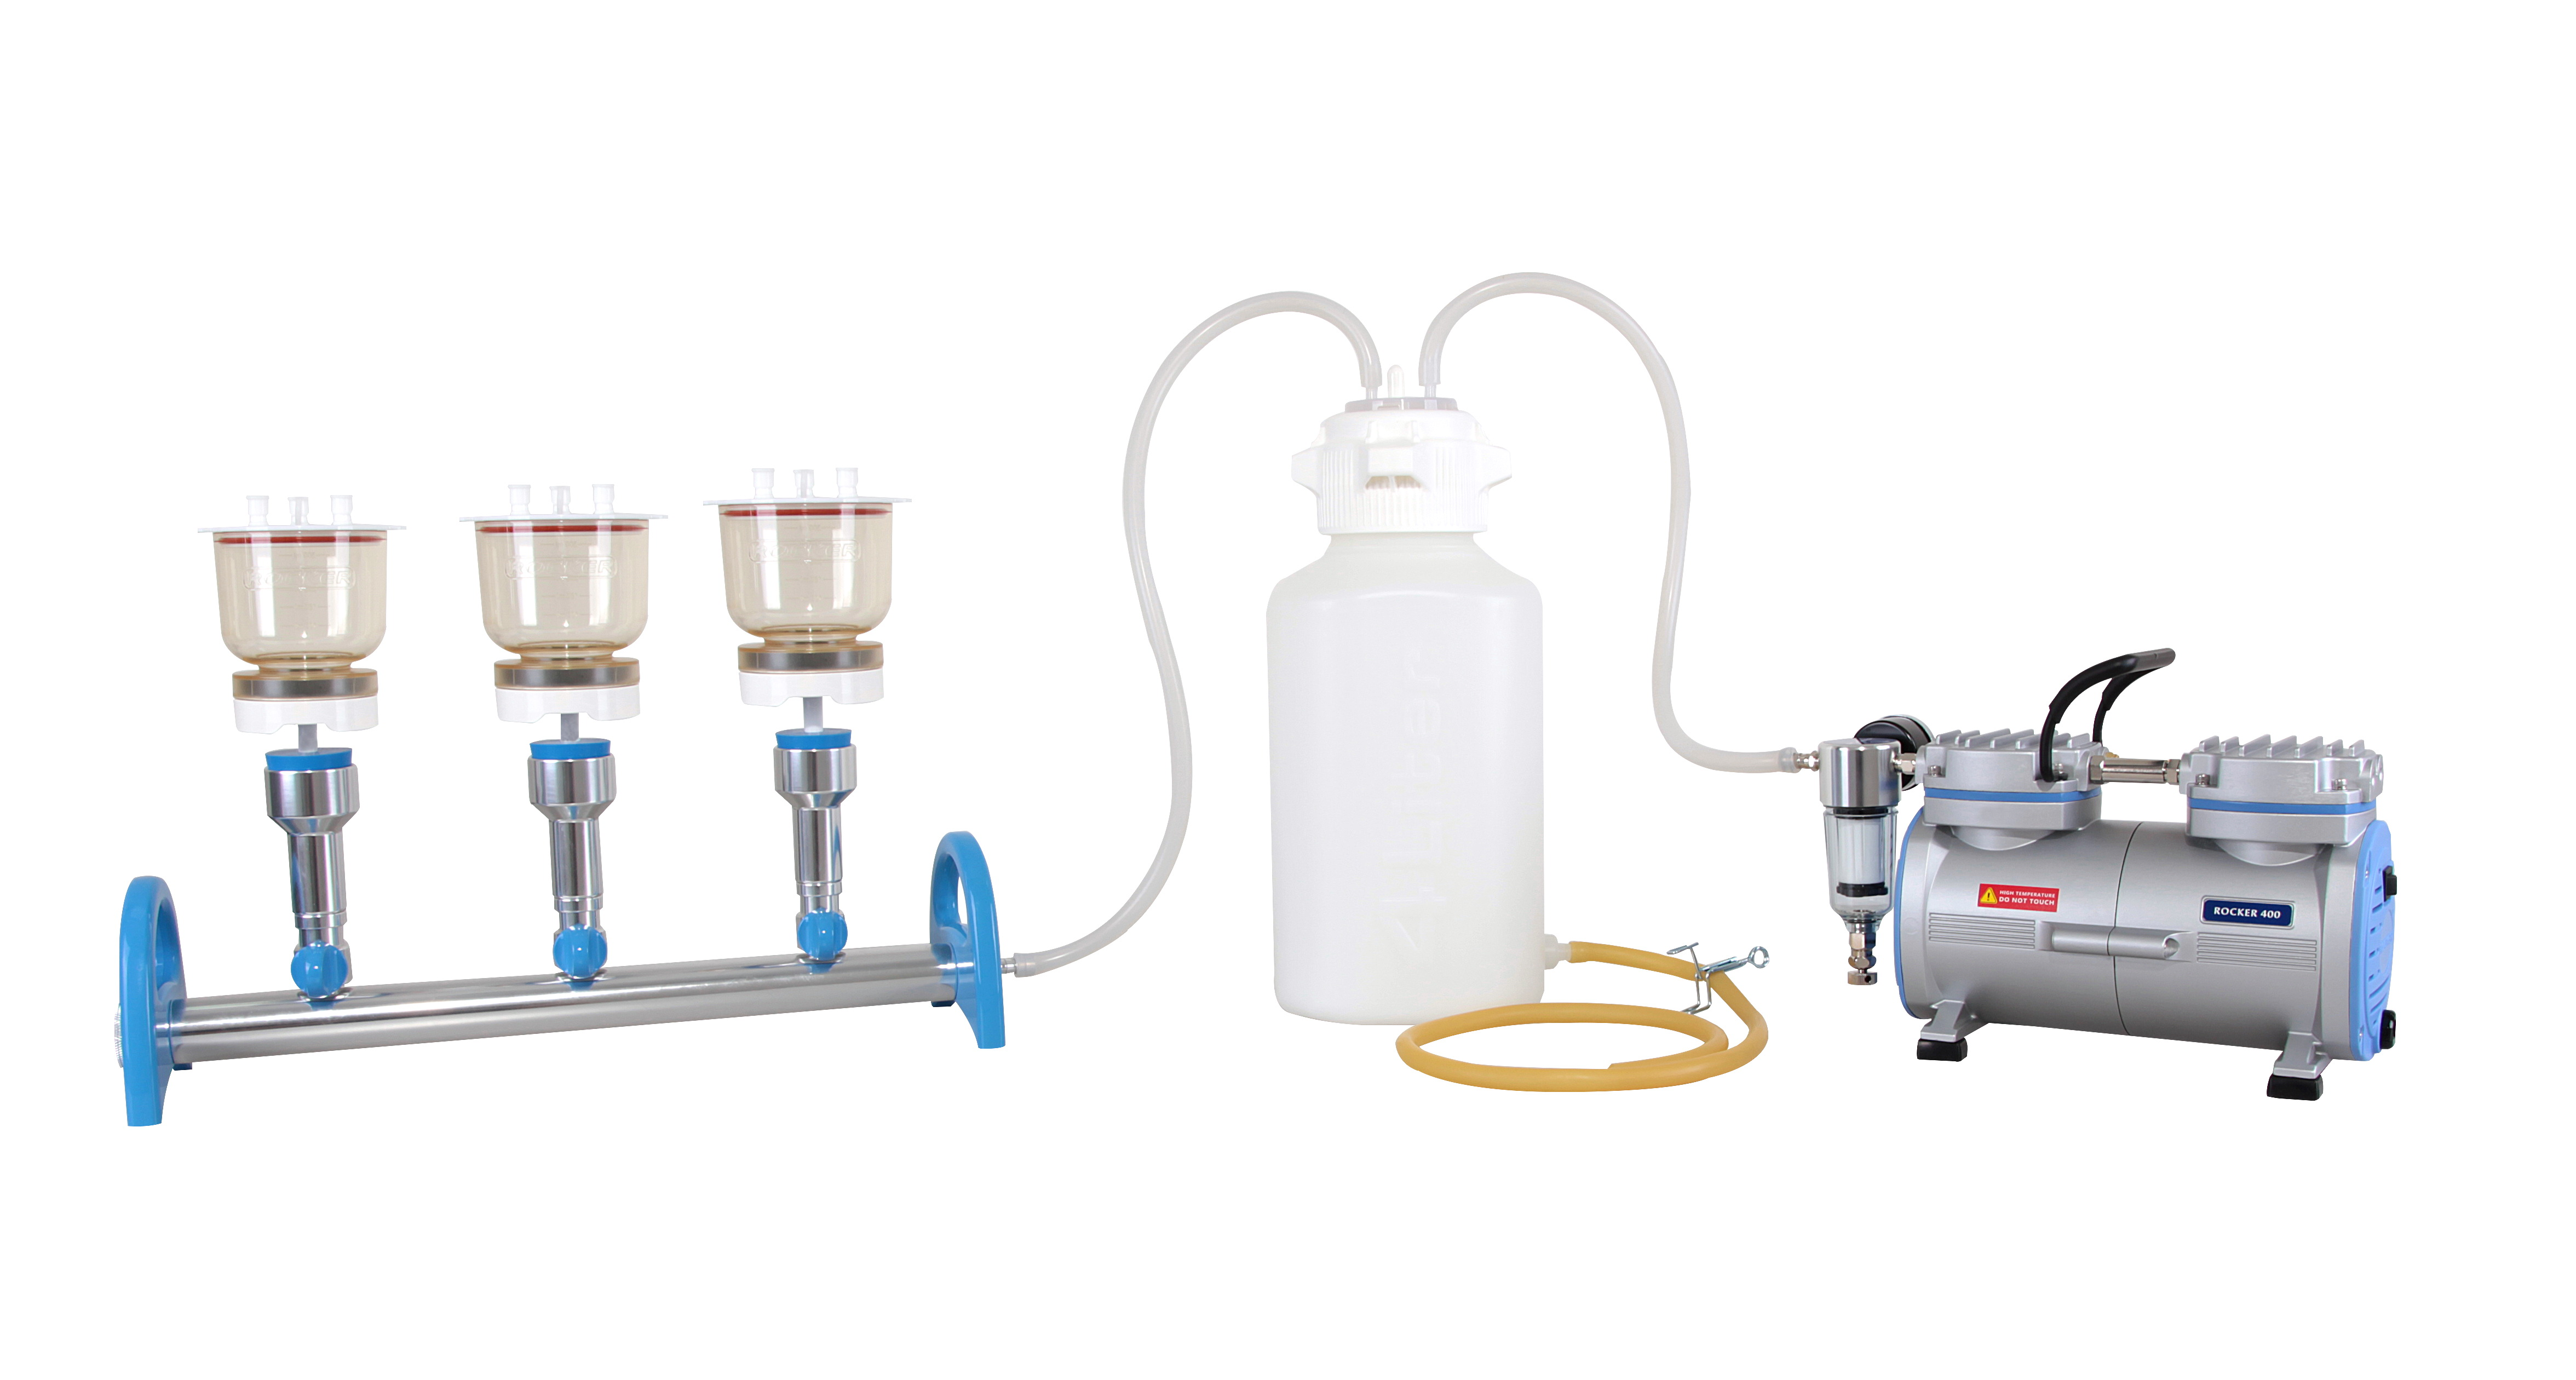 Manifold Sets With Vacuum Pumps And Waste Bottles Witeg